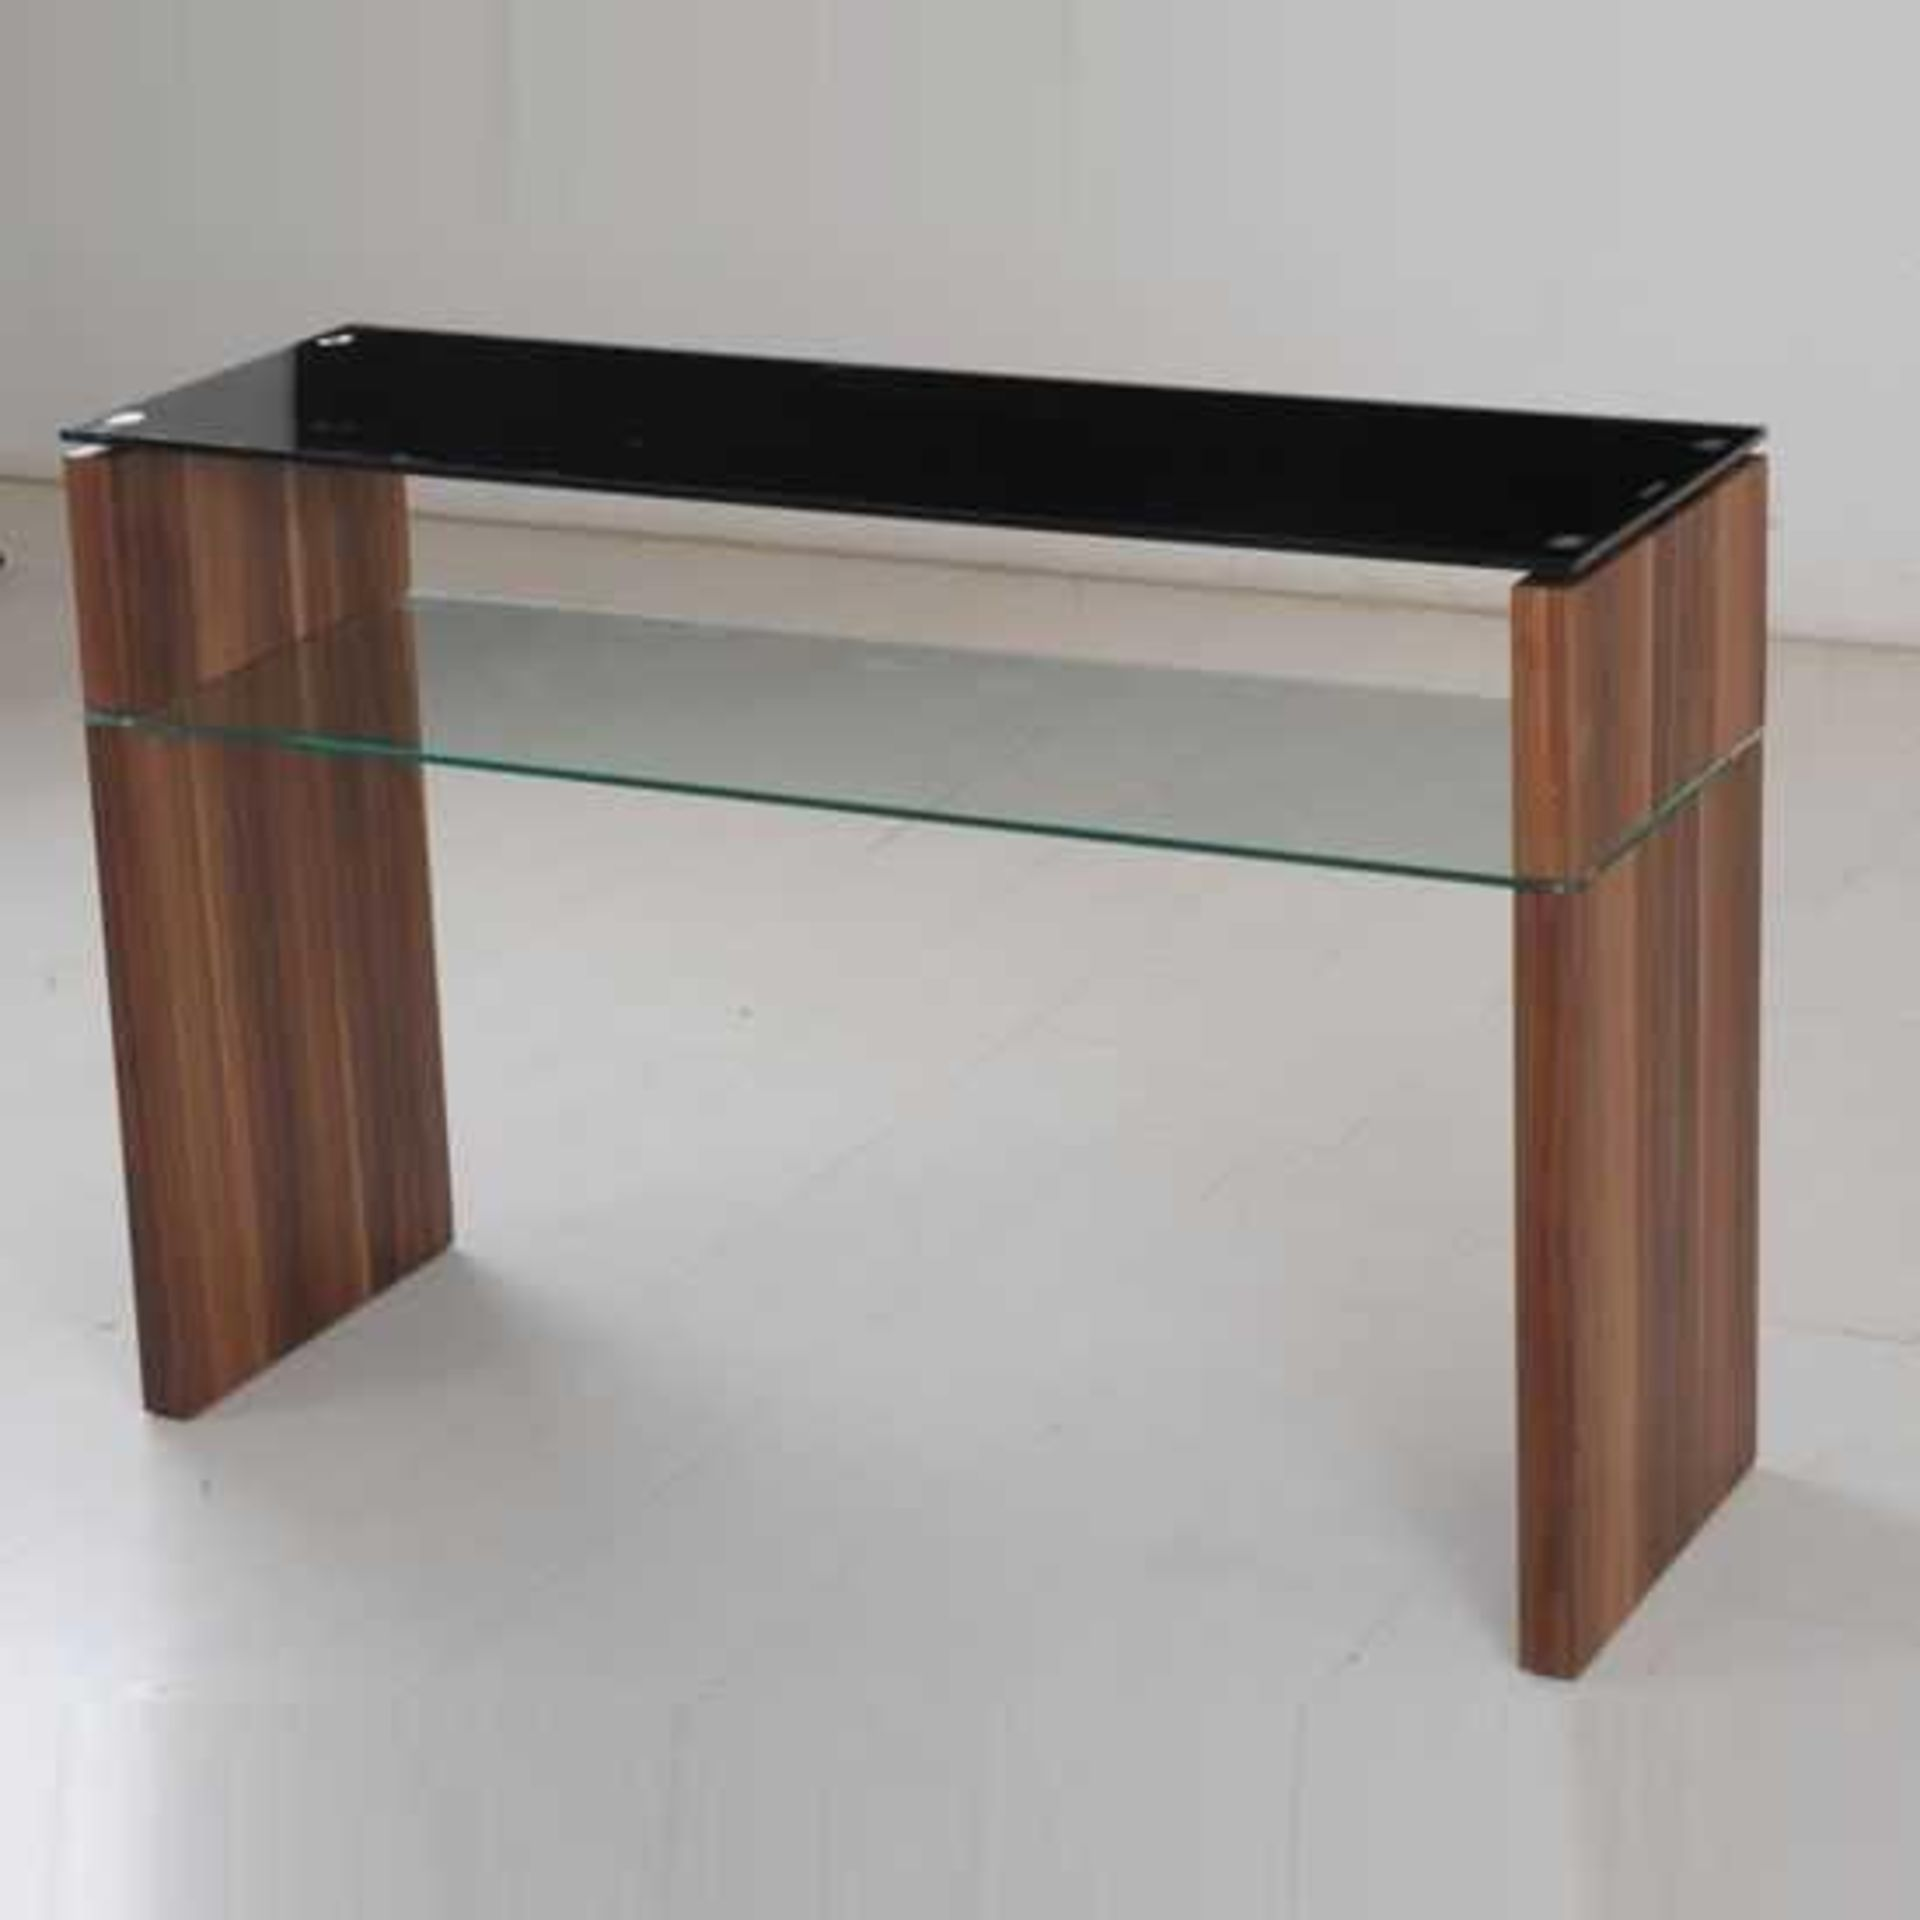 RRP £290 - Boxed 'Atlanta' Console Table In Walnut Finish With Black Glass Top (Appraisals Available